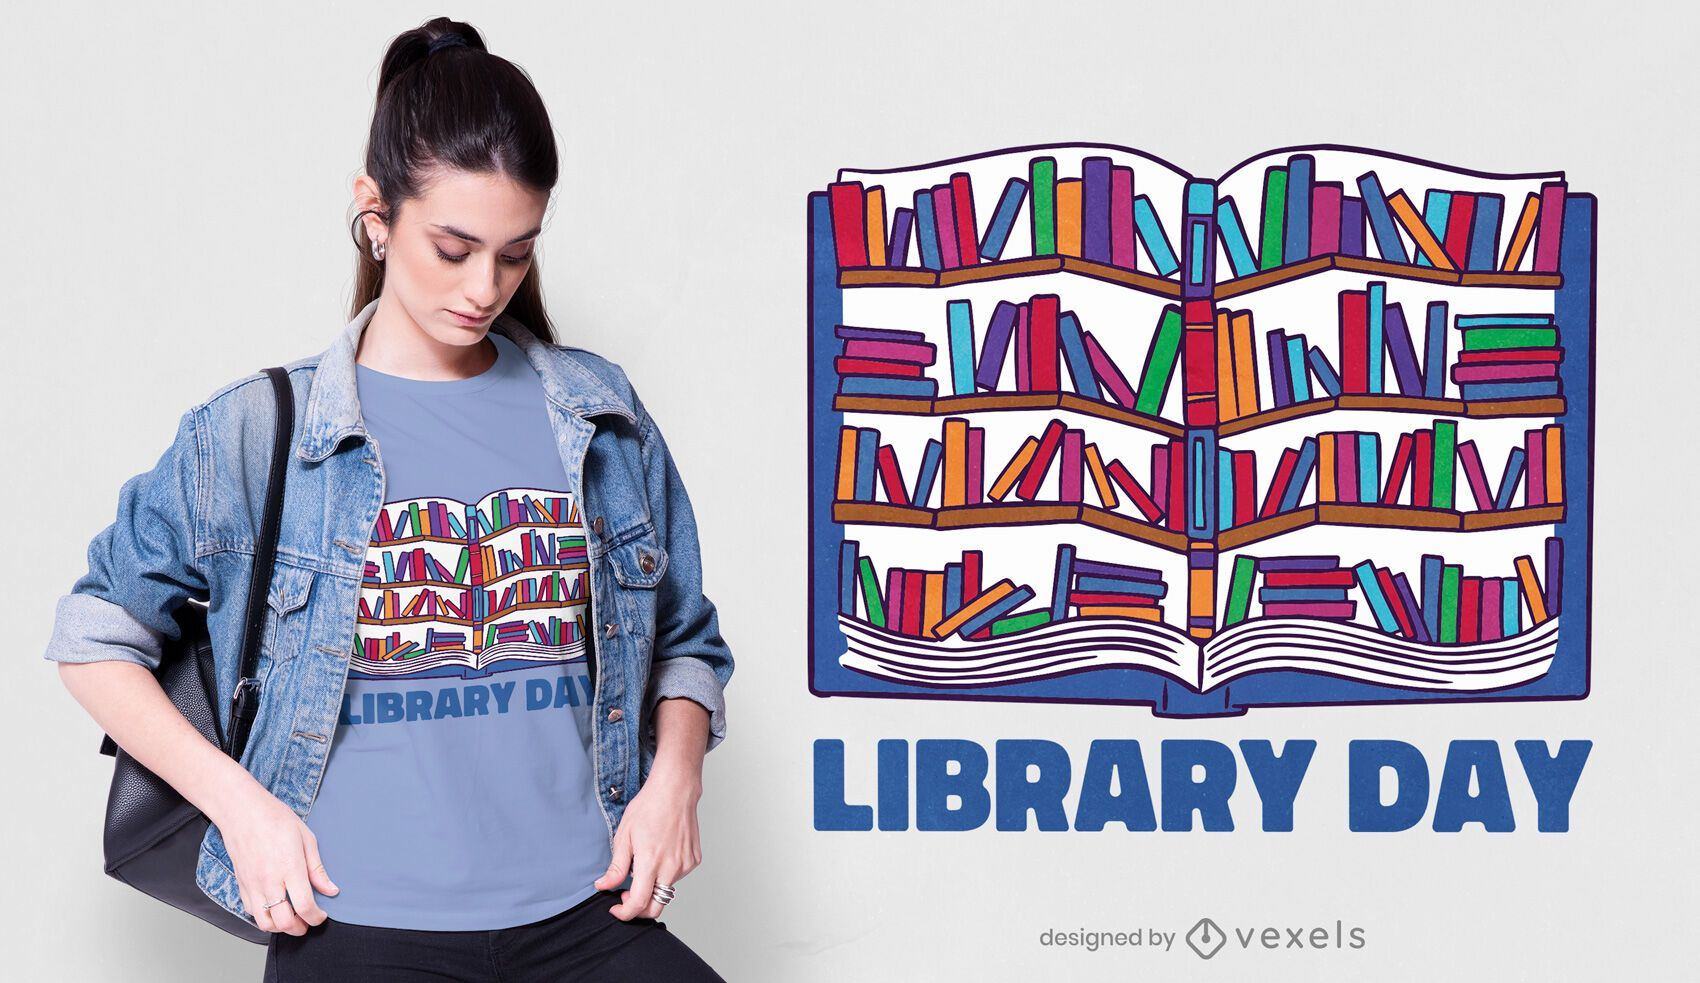 Library day t-shirt design